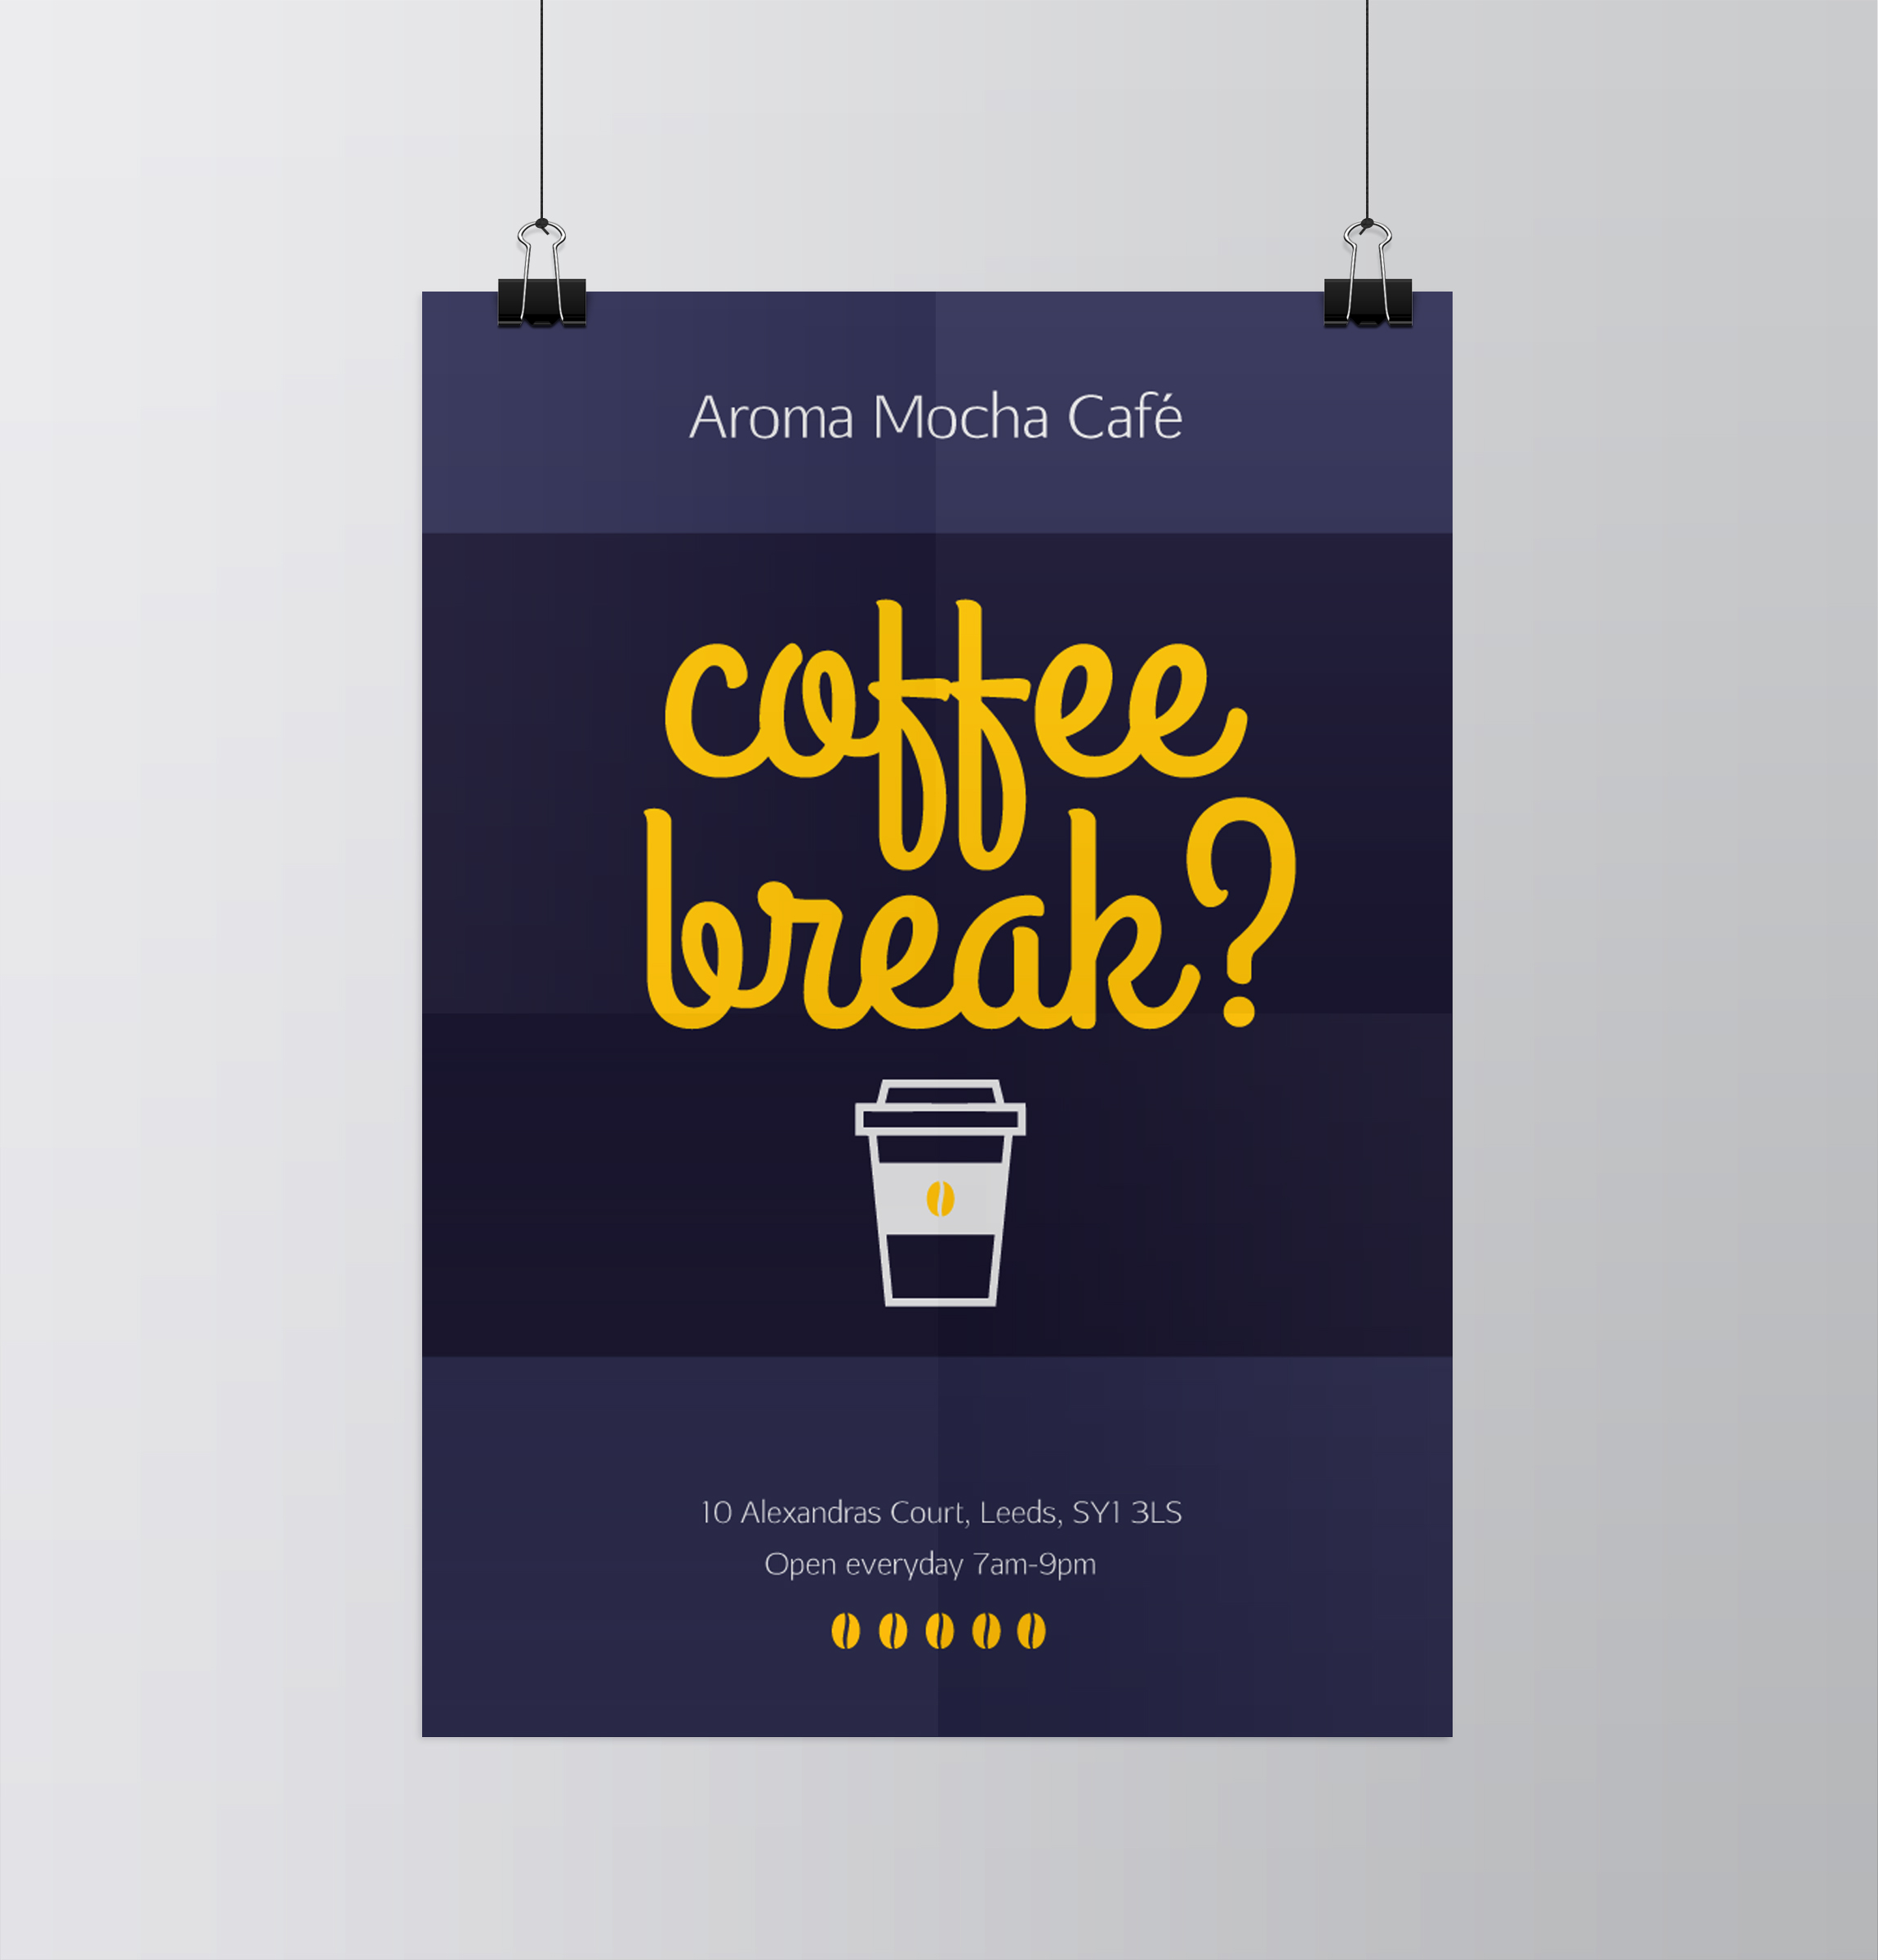 Top 10 New ideas for Coffee Shop promotion - Print